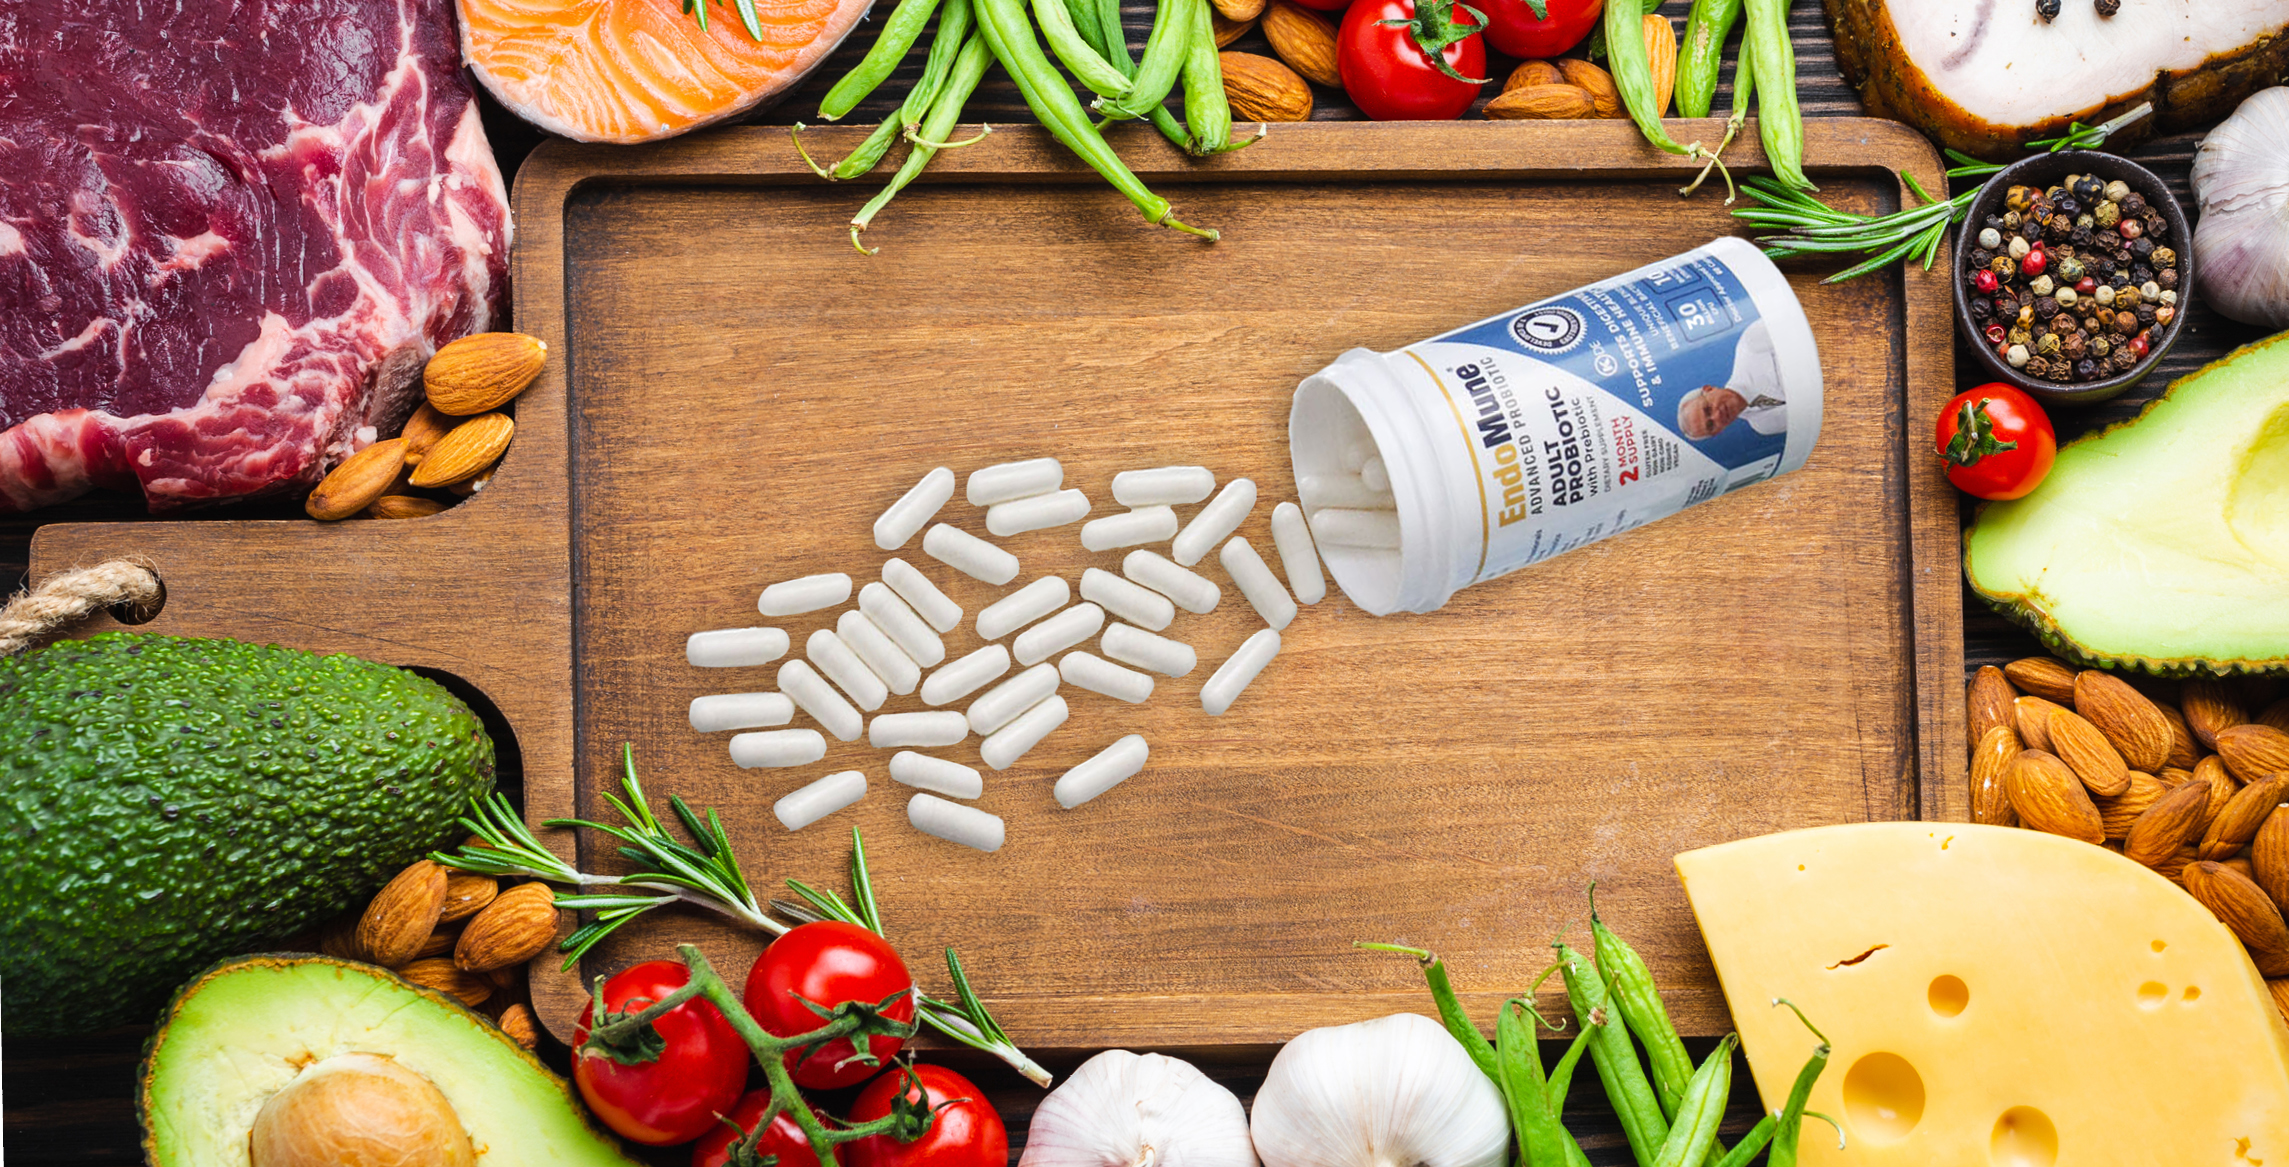 EndoMune pills on a cutting board, surrounded by various fresh vegetables